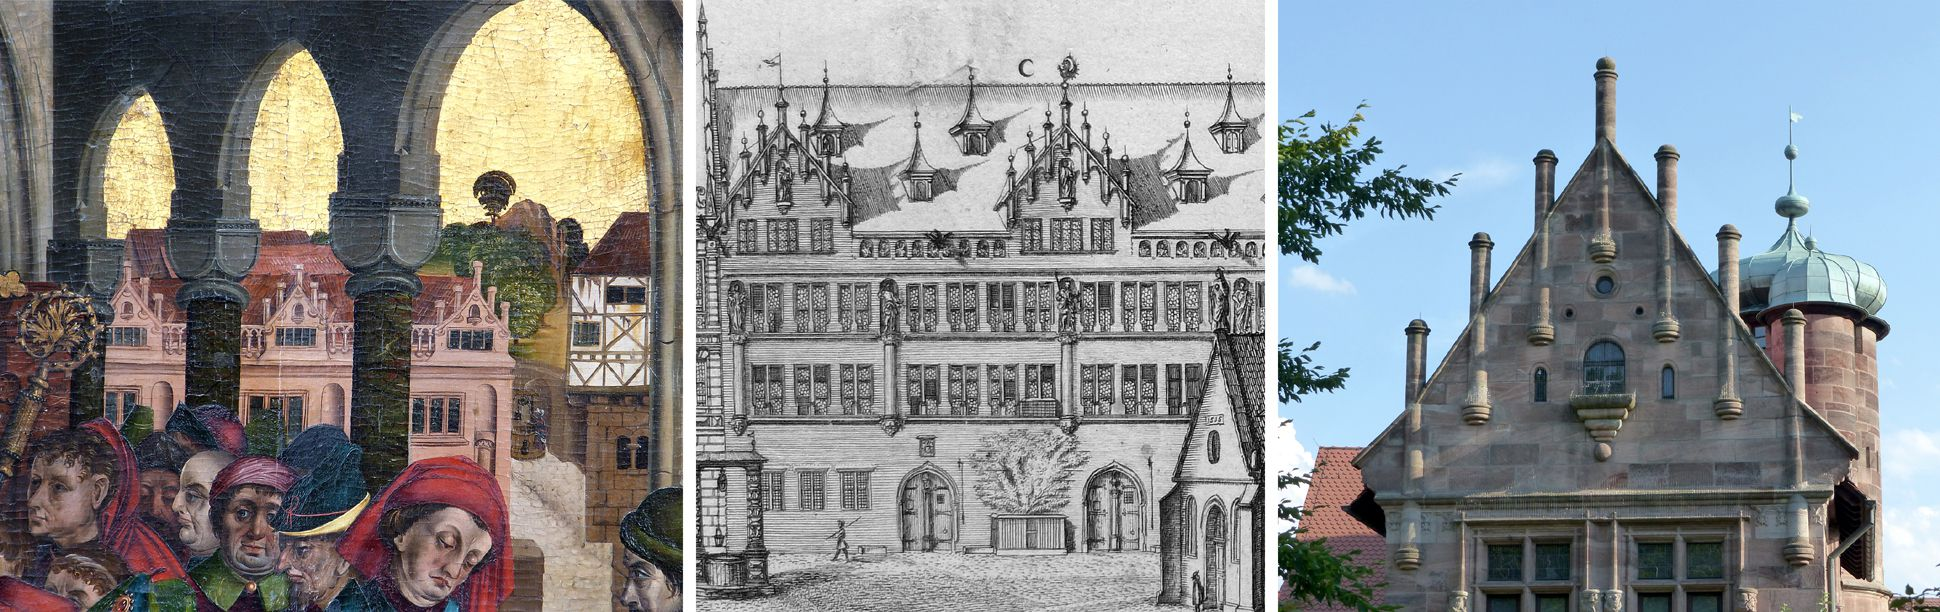 Epitaph of Hans Mayer (died August 21, 1473) and his spouse Kunigunde, neé Sternecker (died March 23, 1450) left: view to the Groland premises (Egidienberg); centre: Graff´s representation of the same motif (1682), right: gable of the little Tucher palace (1533 - 1544)